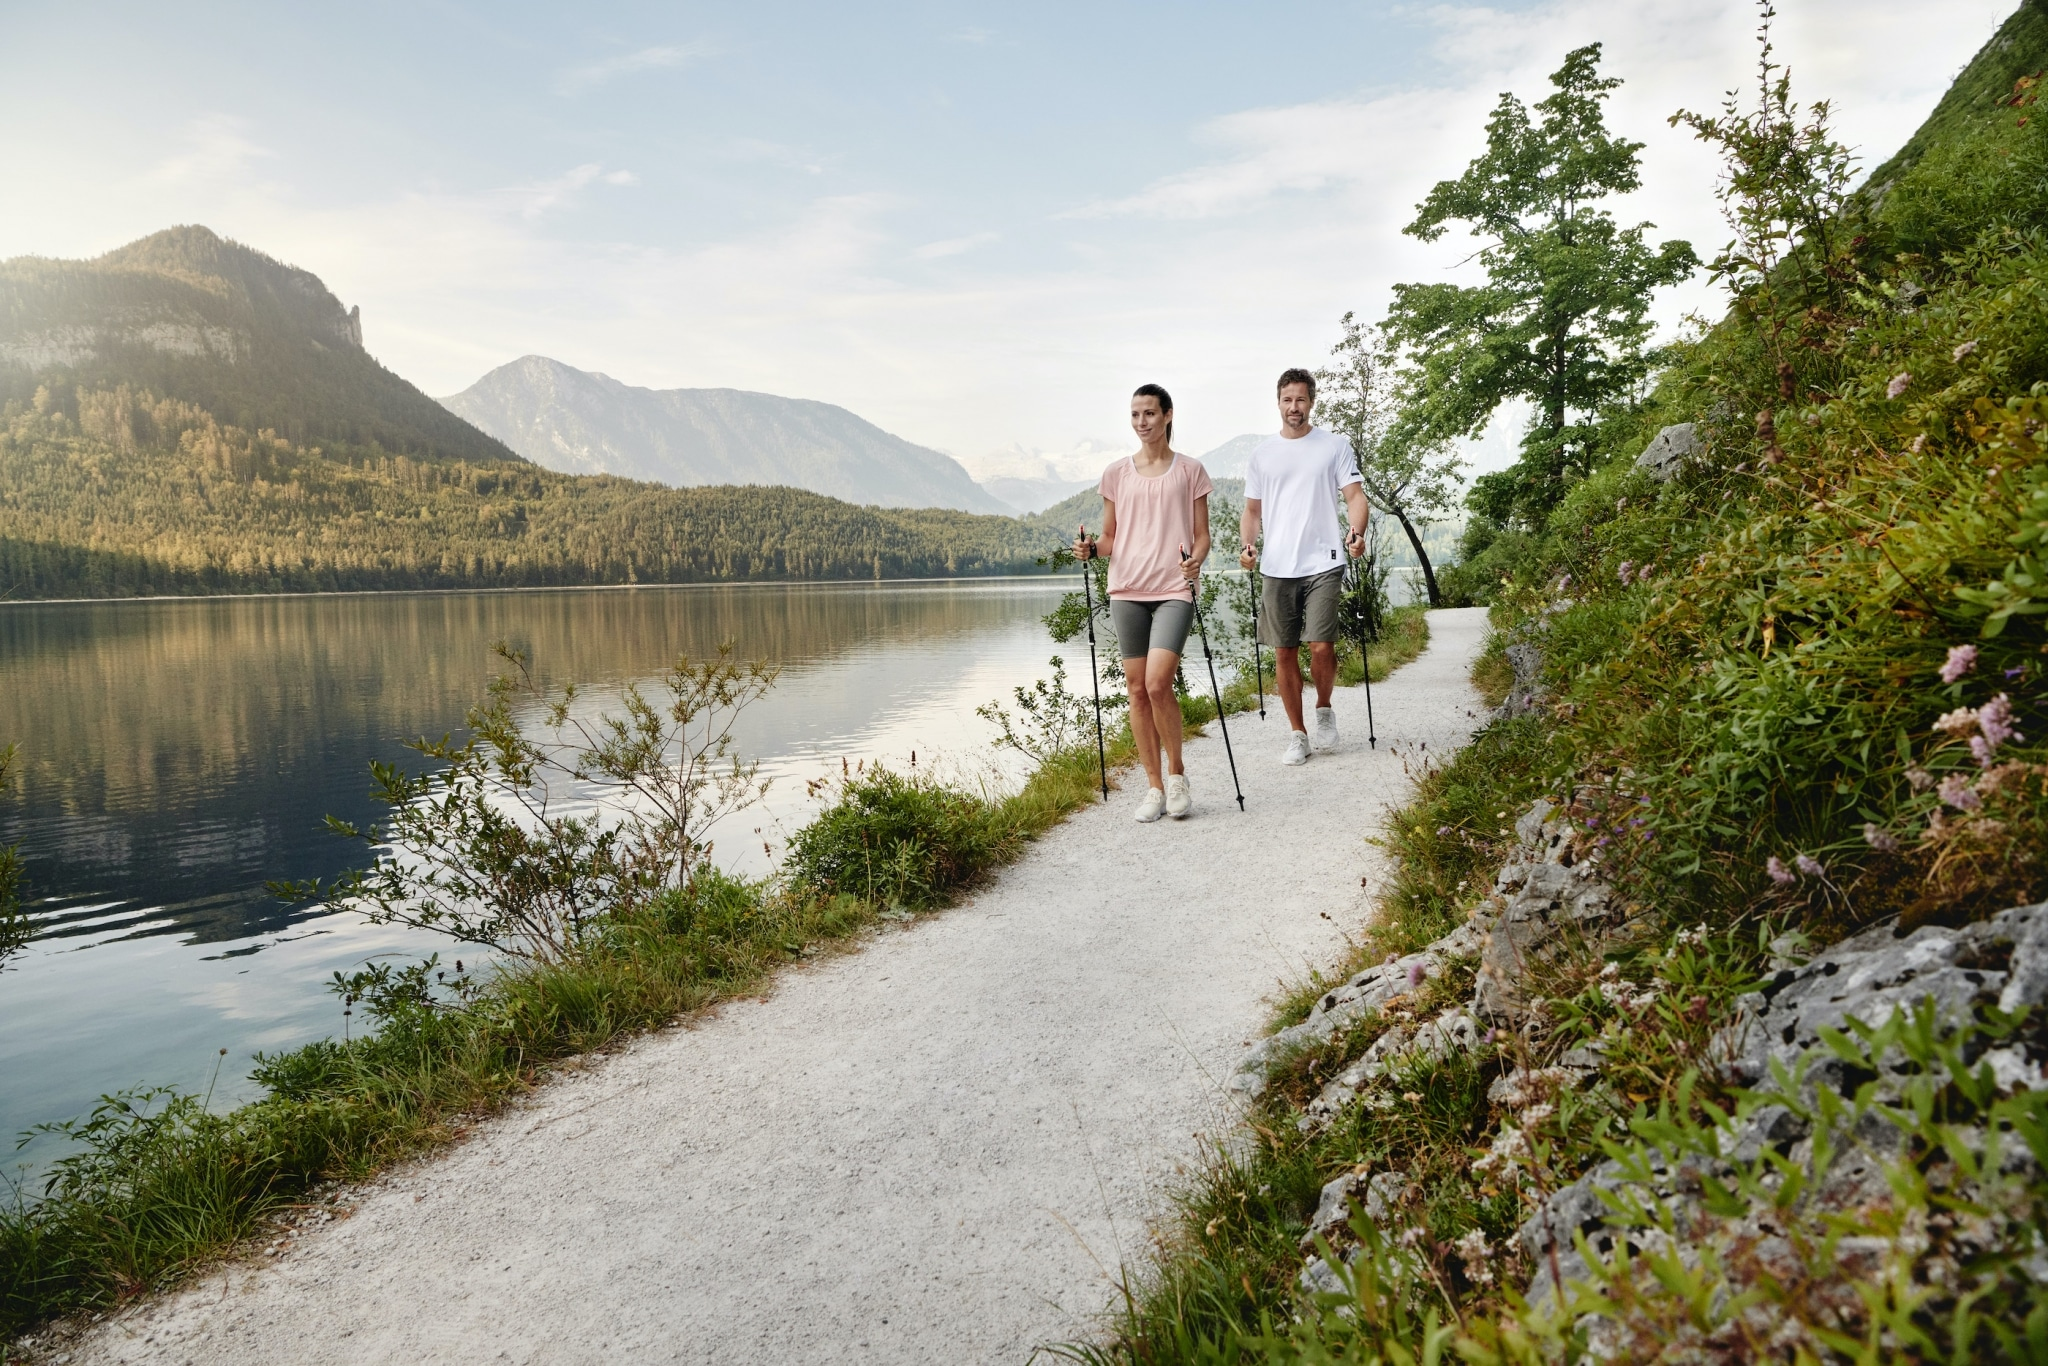 Pair nordic walking along the lake Altaussee